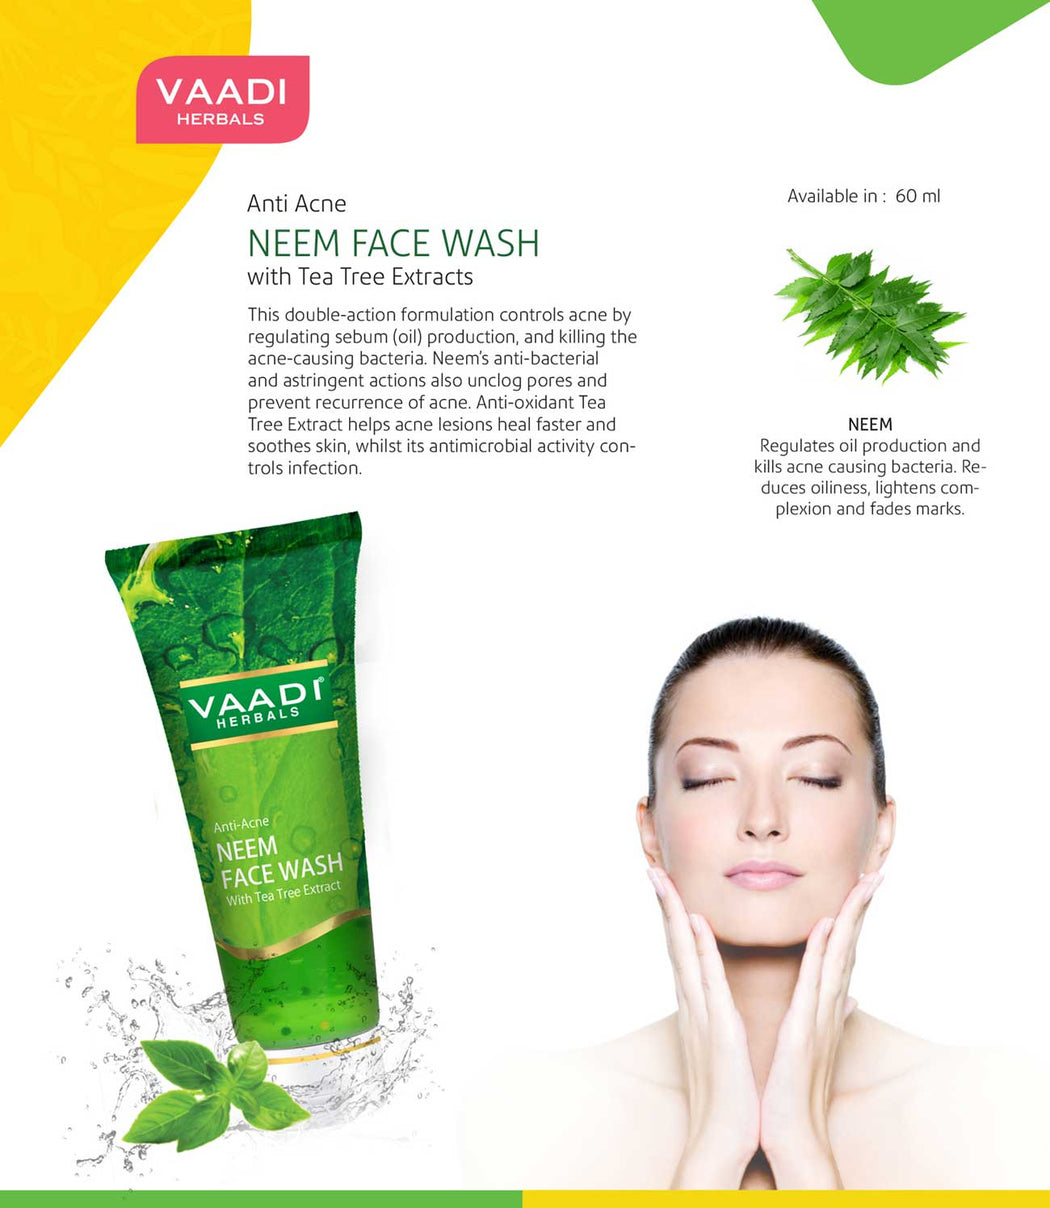 Pack of 4 Anti-Acne Neem Face Wash With Tea Tree Extract (60 ml x 4)